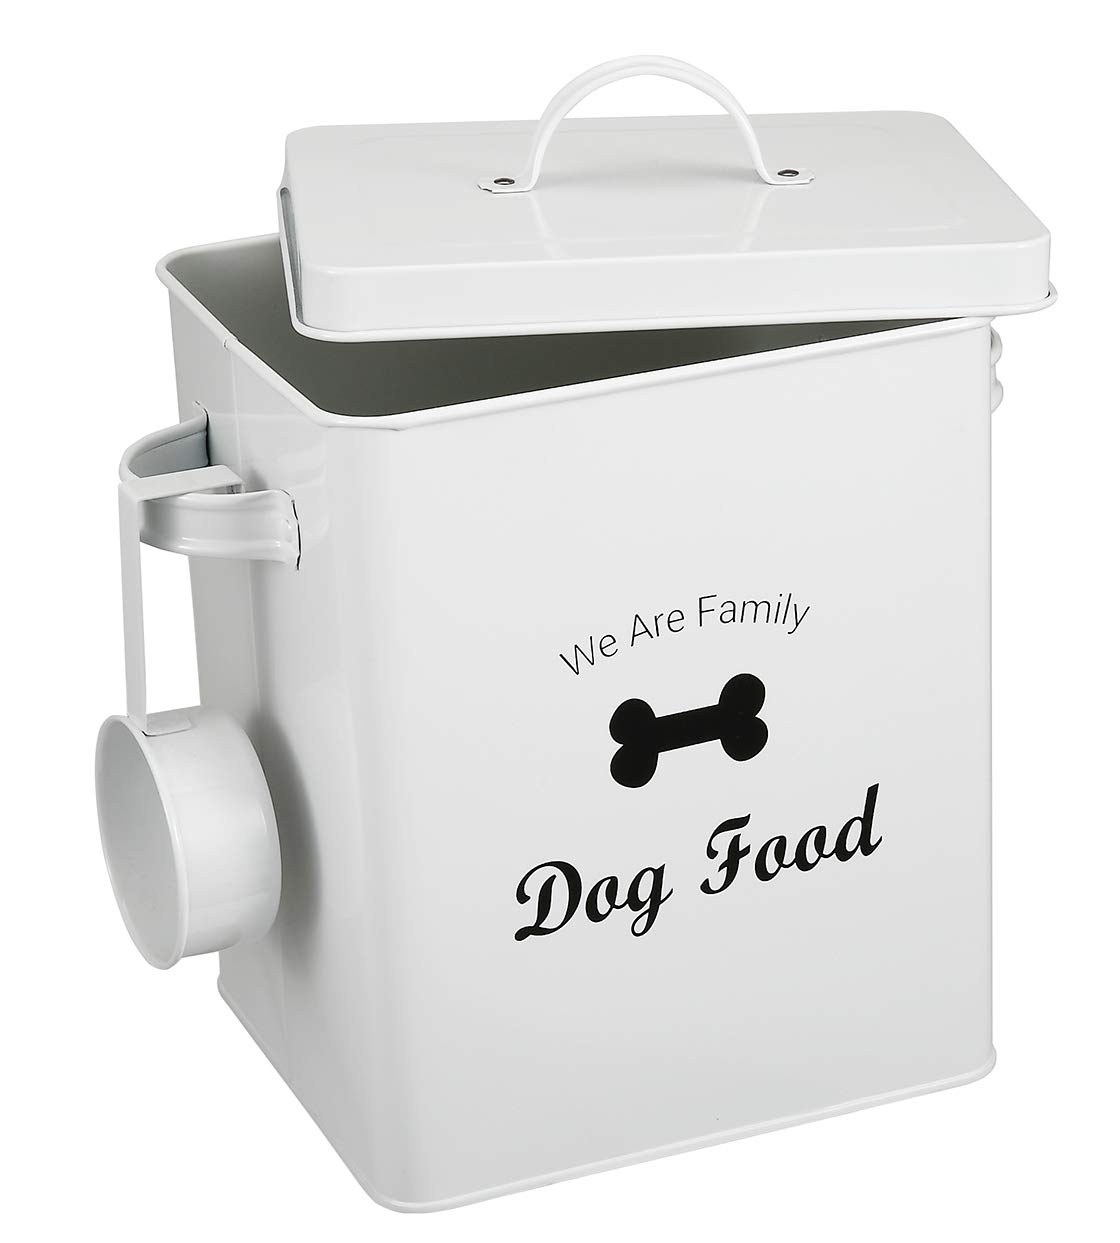 Geyecete Dog Treat and Food Storage Tin with Lid - 6lbs Capacity - Serving Scoop Included